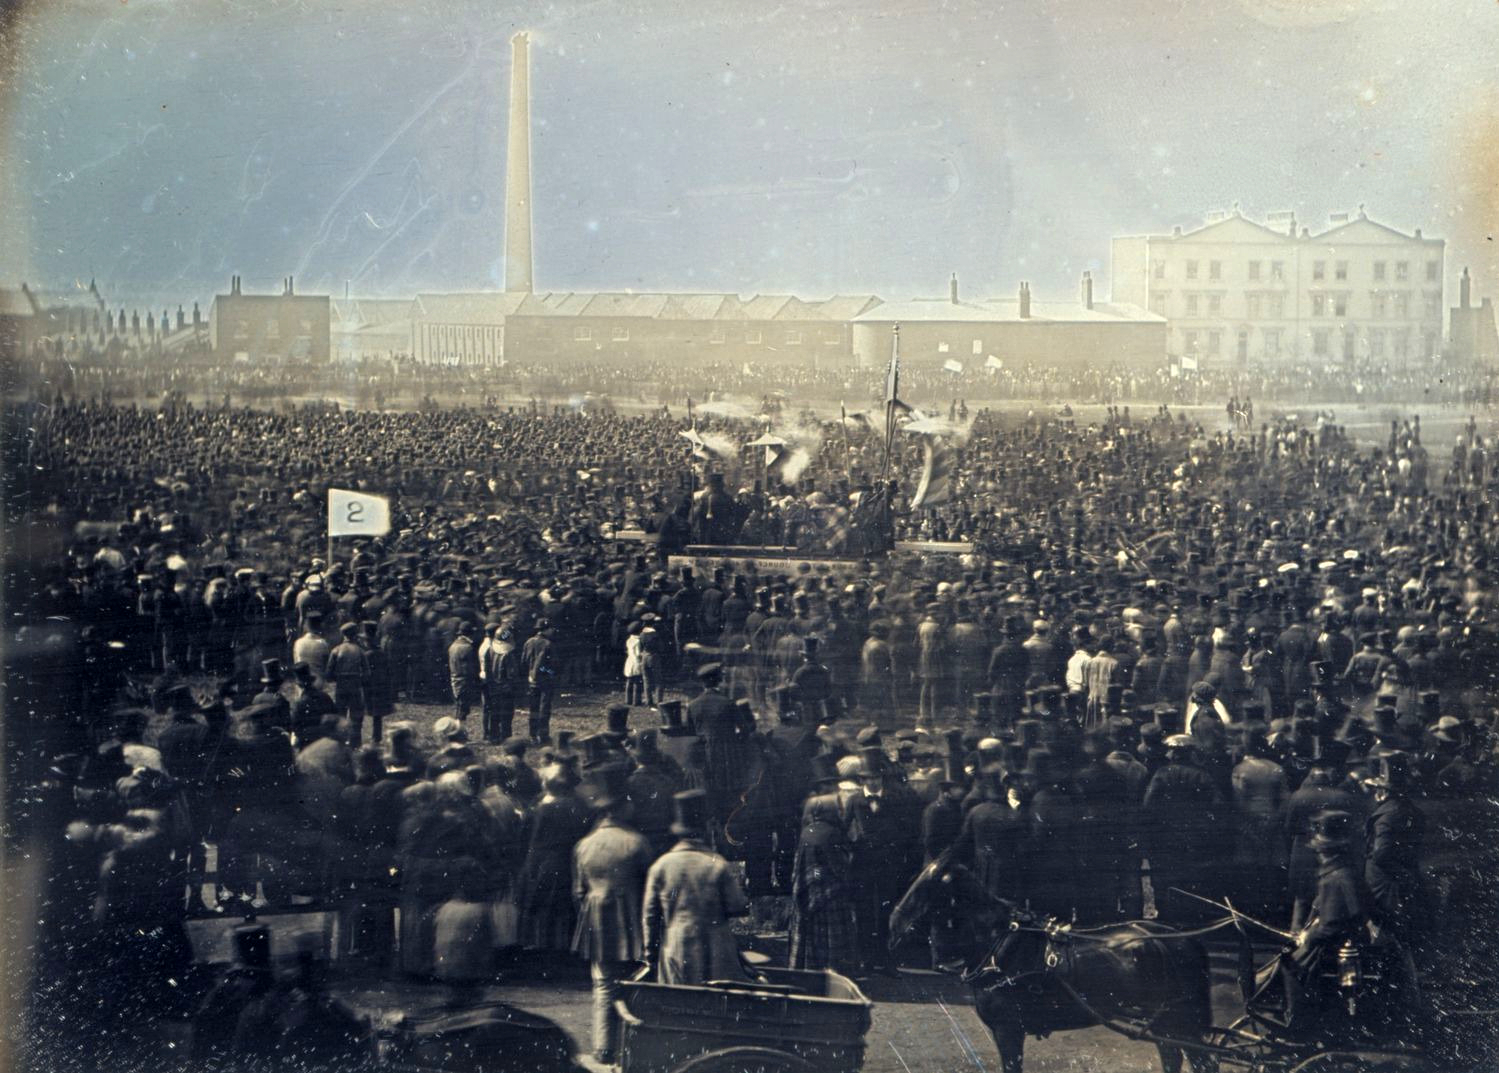 Springtime of the Peoples: the Chartist meeting on Kennington Common, 1848